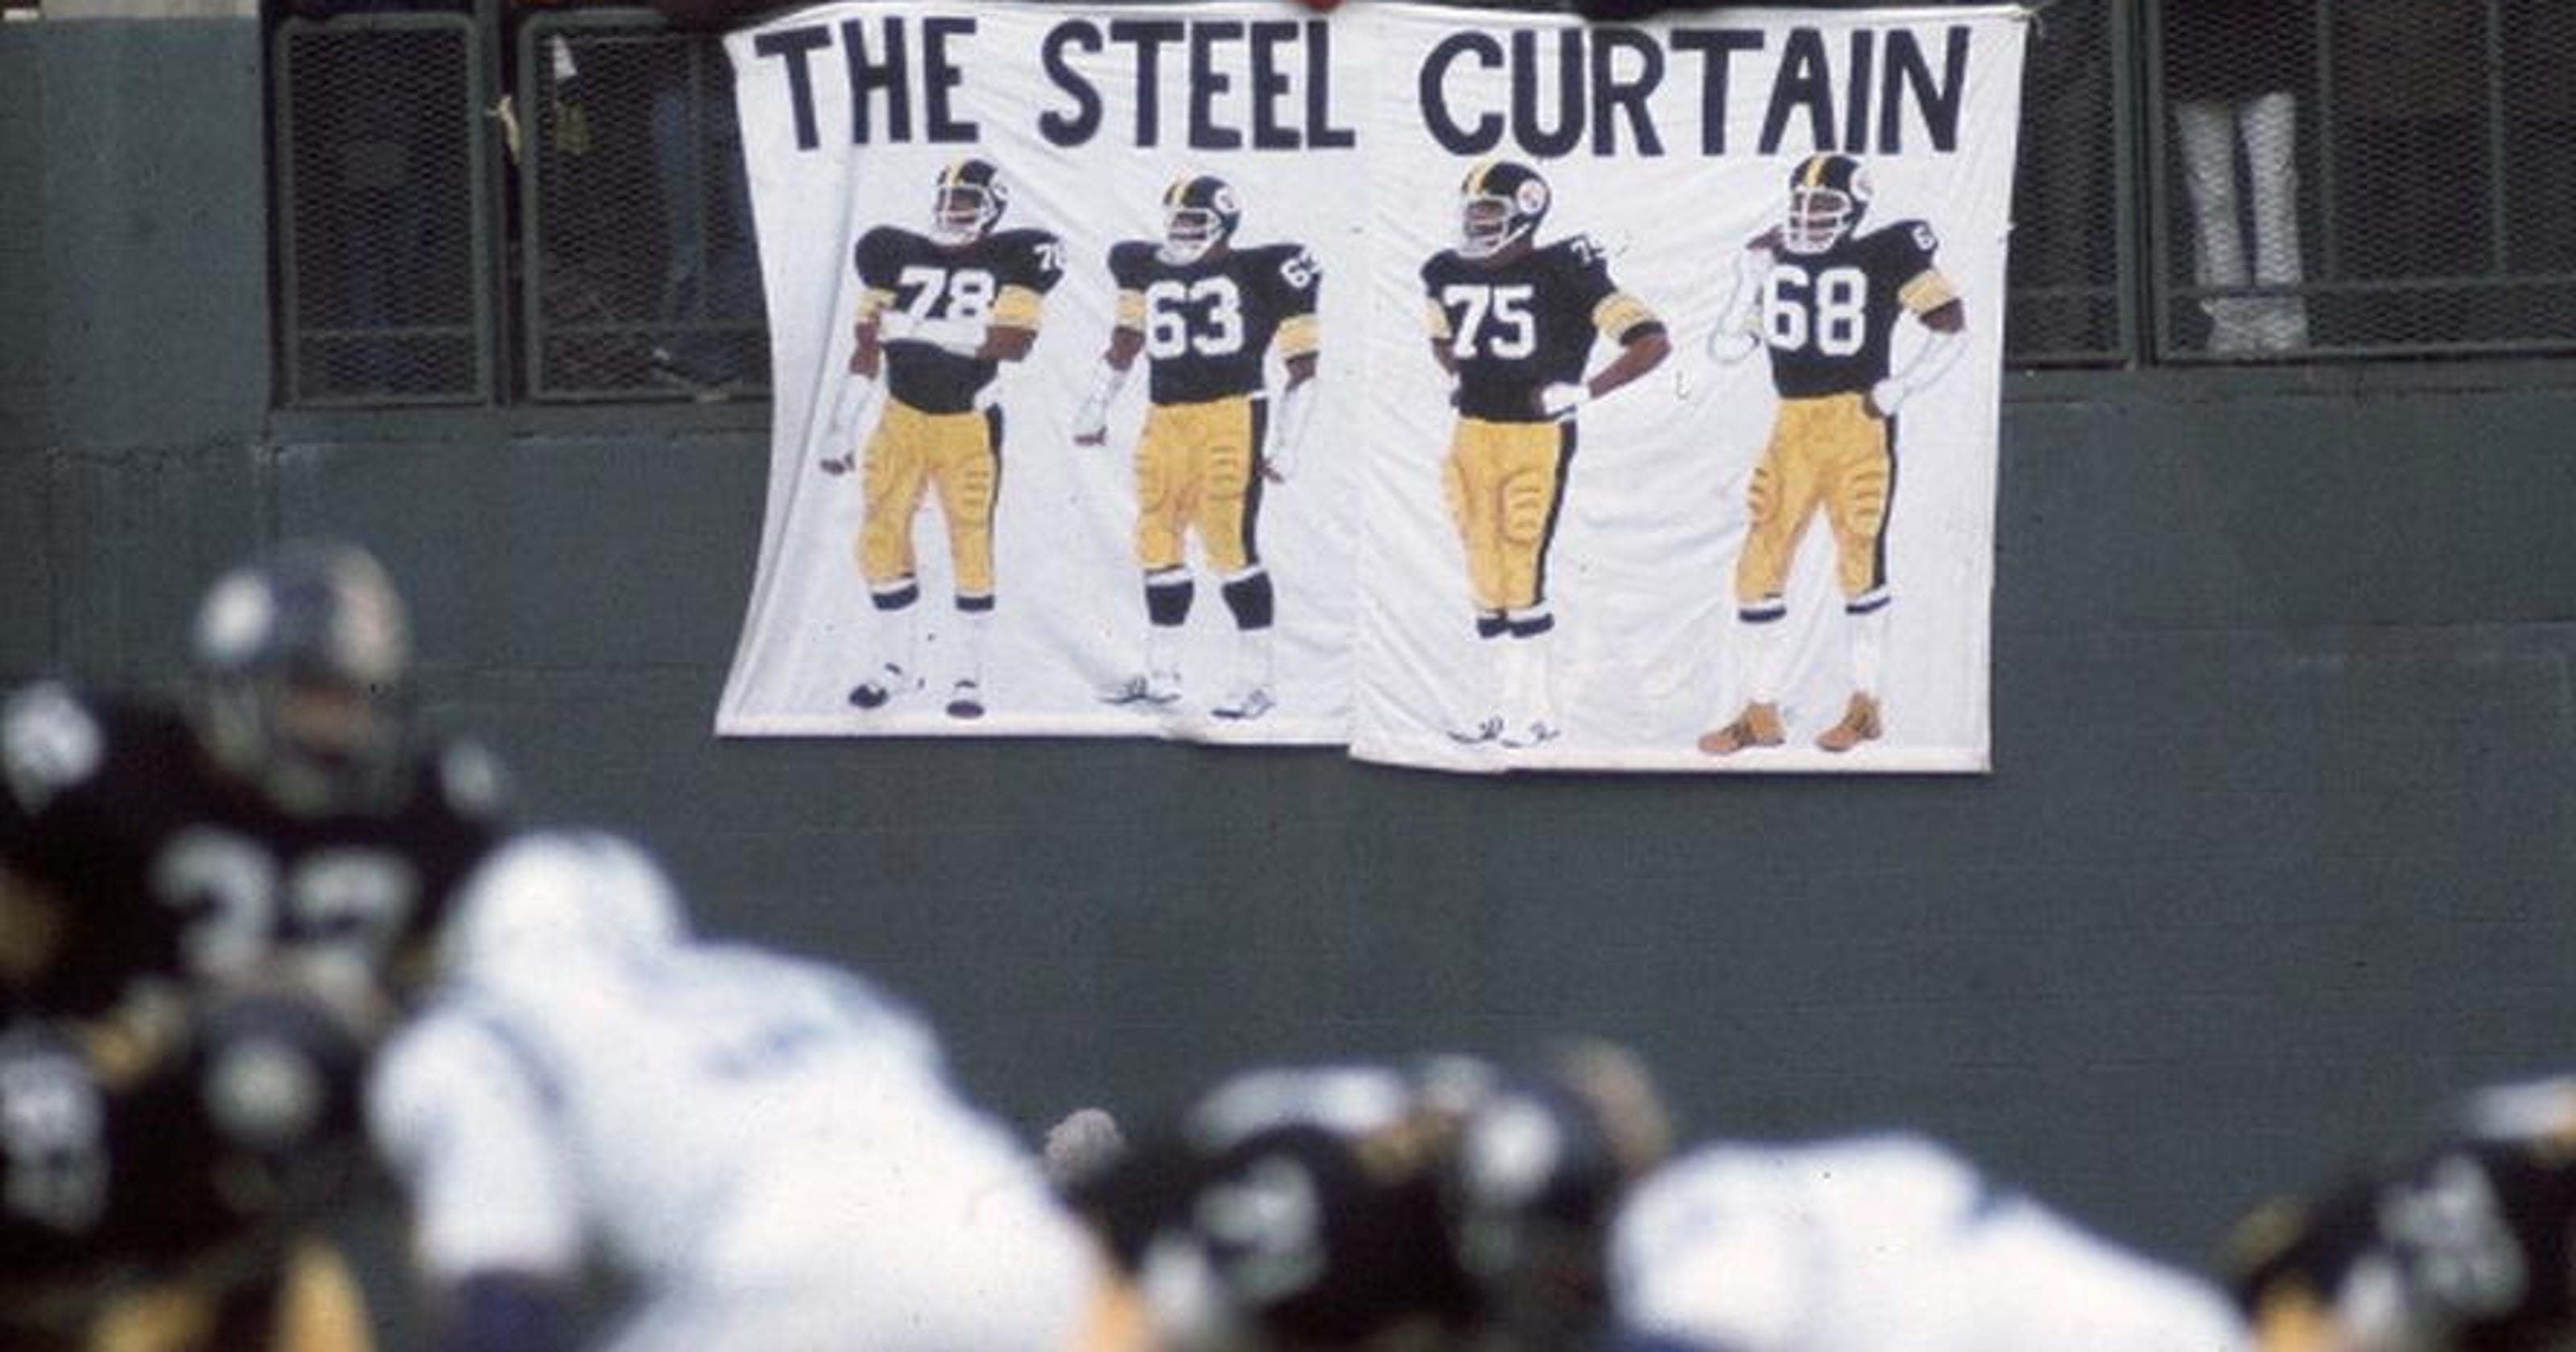 How The Steel Curtain Got Its Name